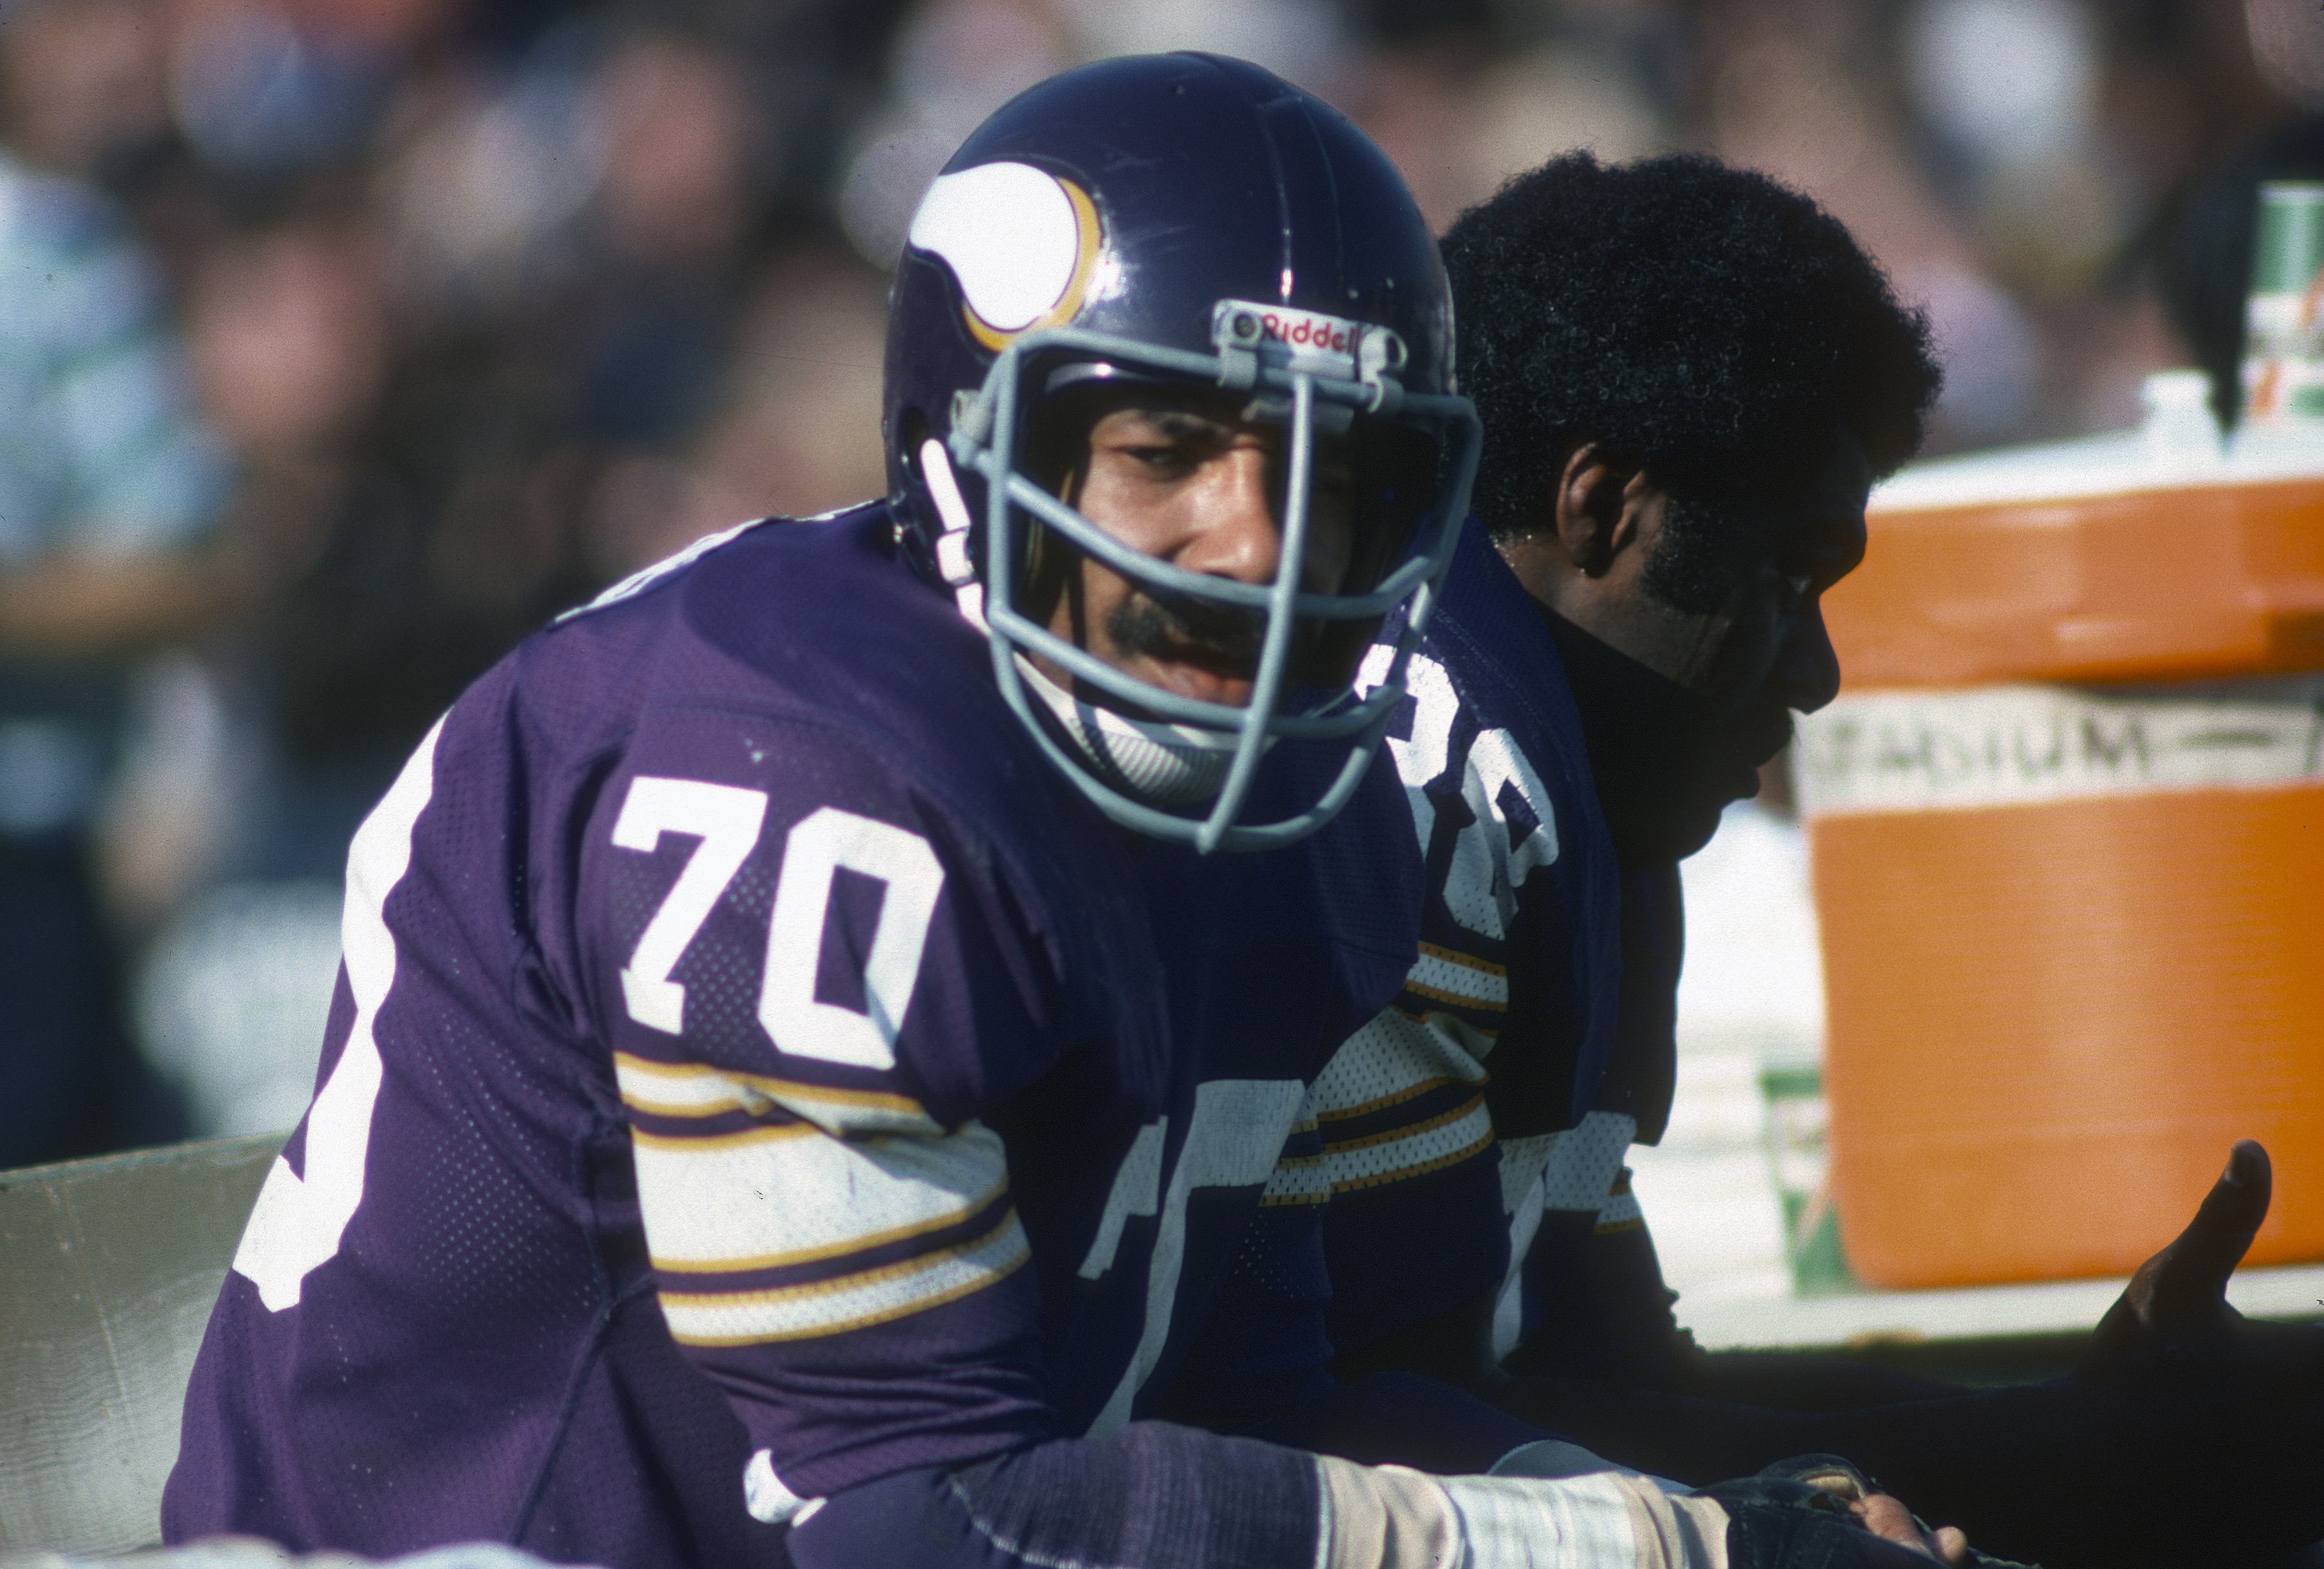 PASADENA, CA- JANUARY 9: Jim Marshall #70 of the Minnesota Vikings looks on from the bench against the Oakland Raiders during Super Bowl XI on January 9, 1977 at the Rose Bowl in Pasadena, California. The Raiders won the Super Bowl 32 -14. (Photo by Focus on Sport/Getty Images)